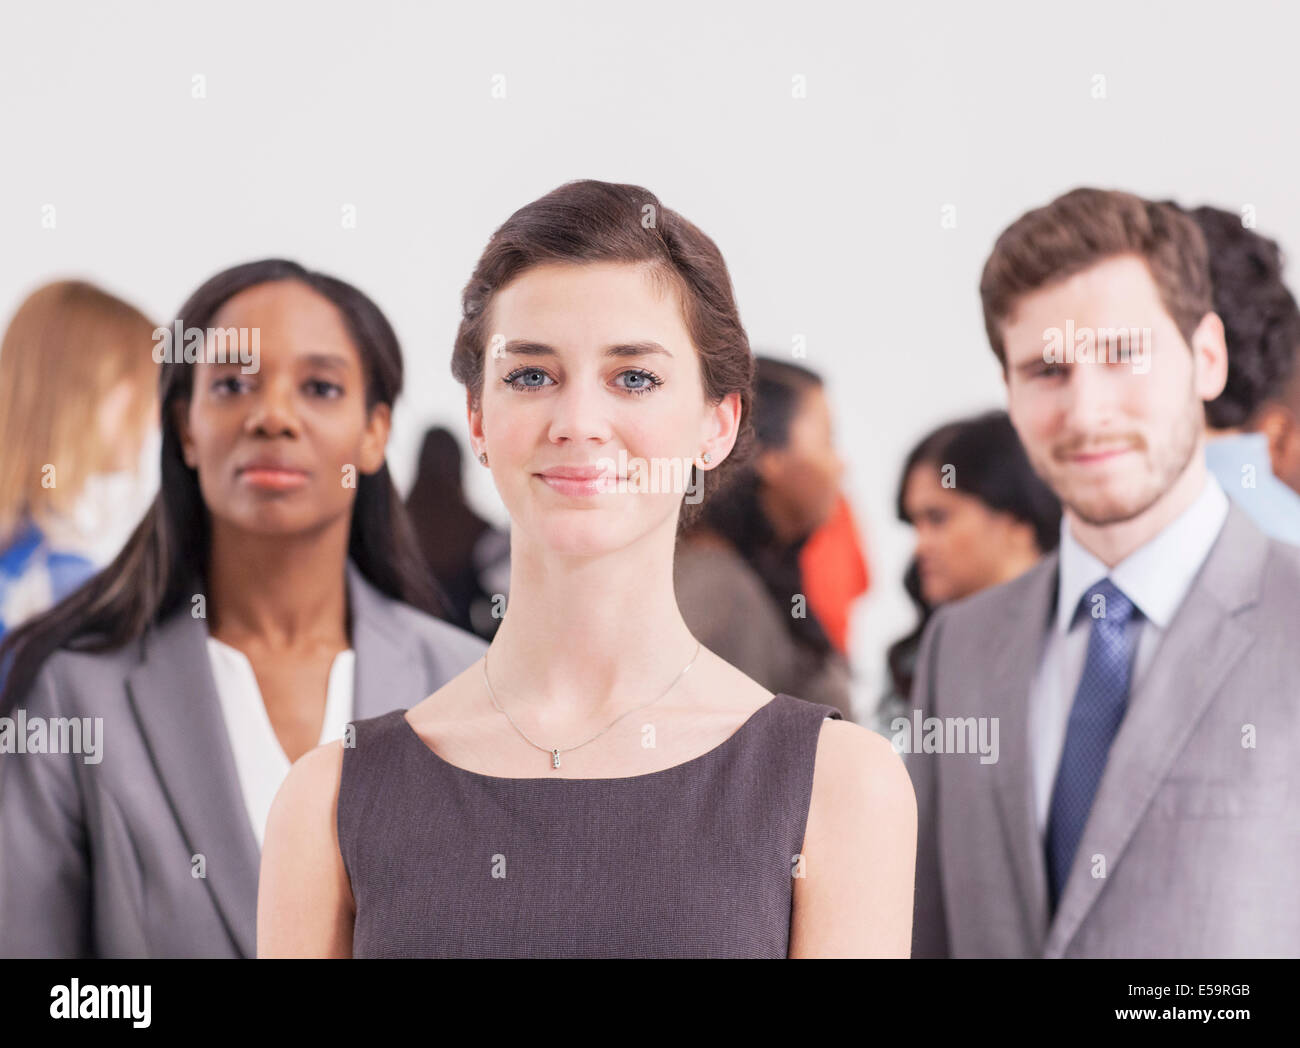 Portrait of confident business people - Stock Image